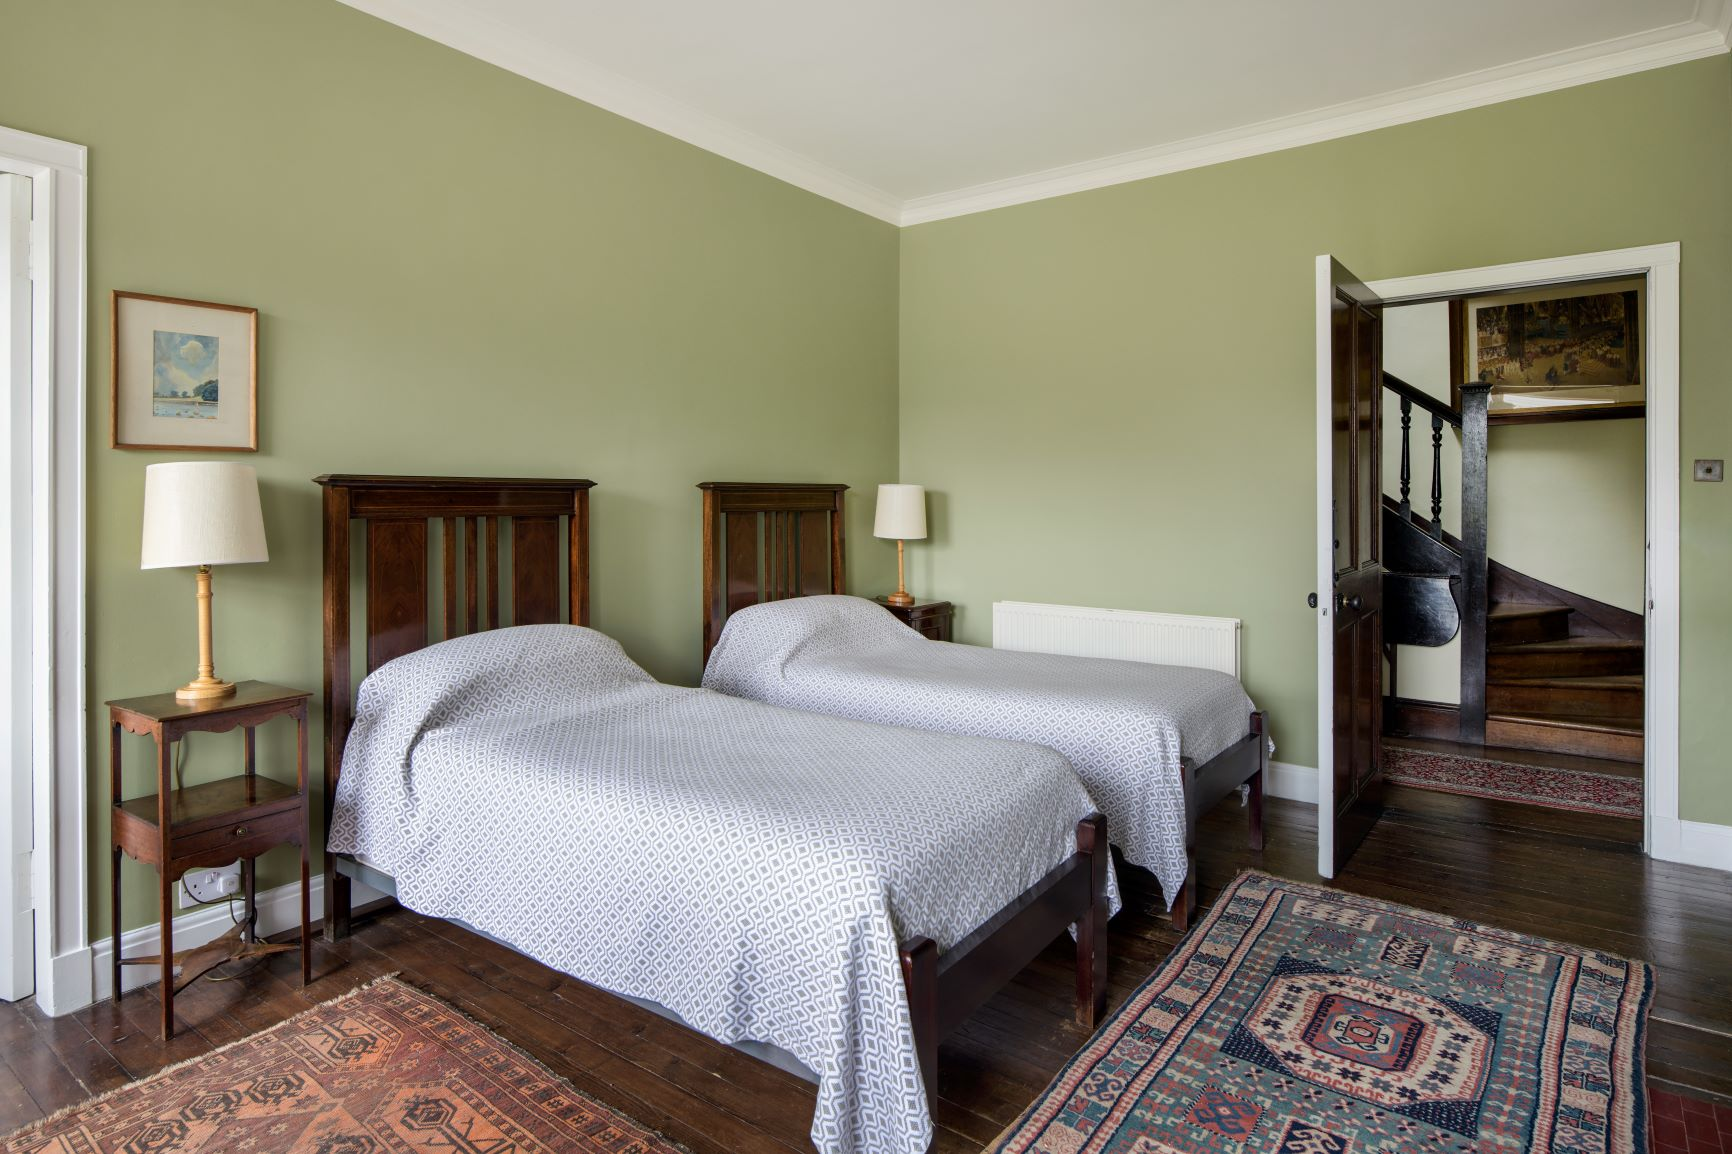 Tapestry Green in one of the twin bedrooms